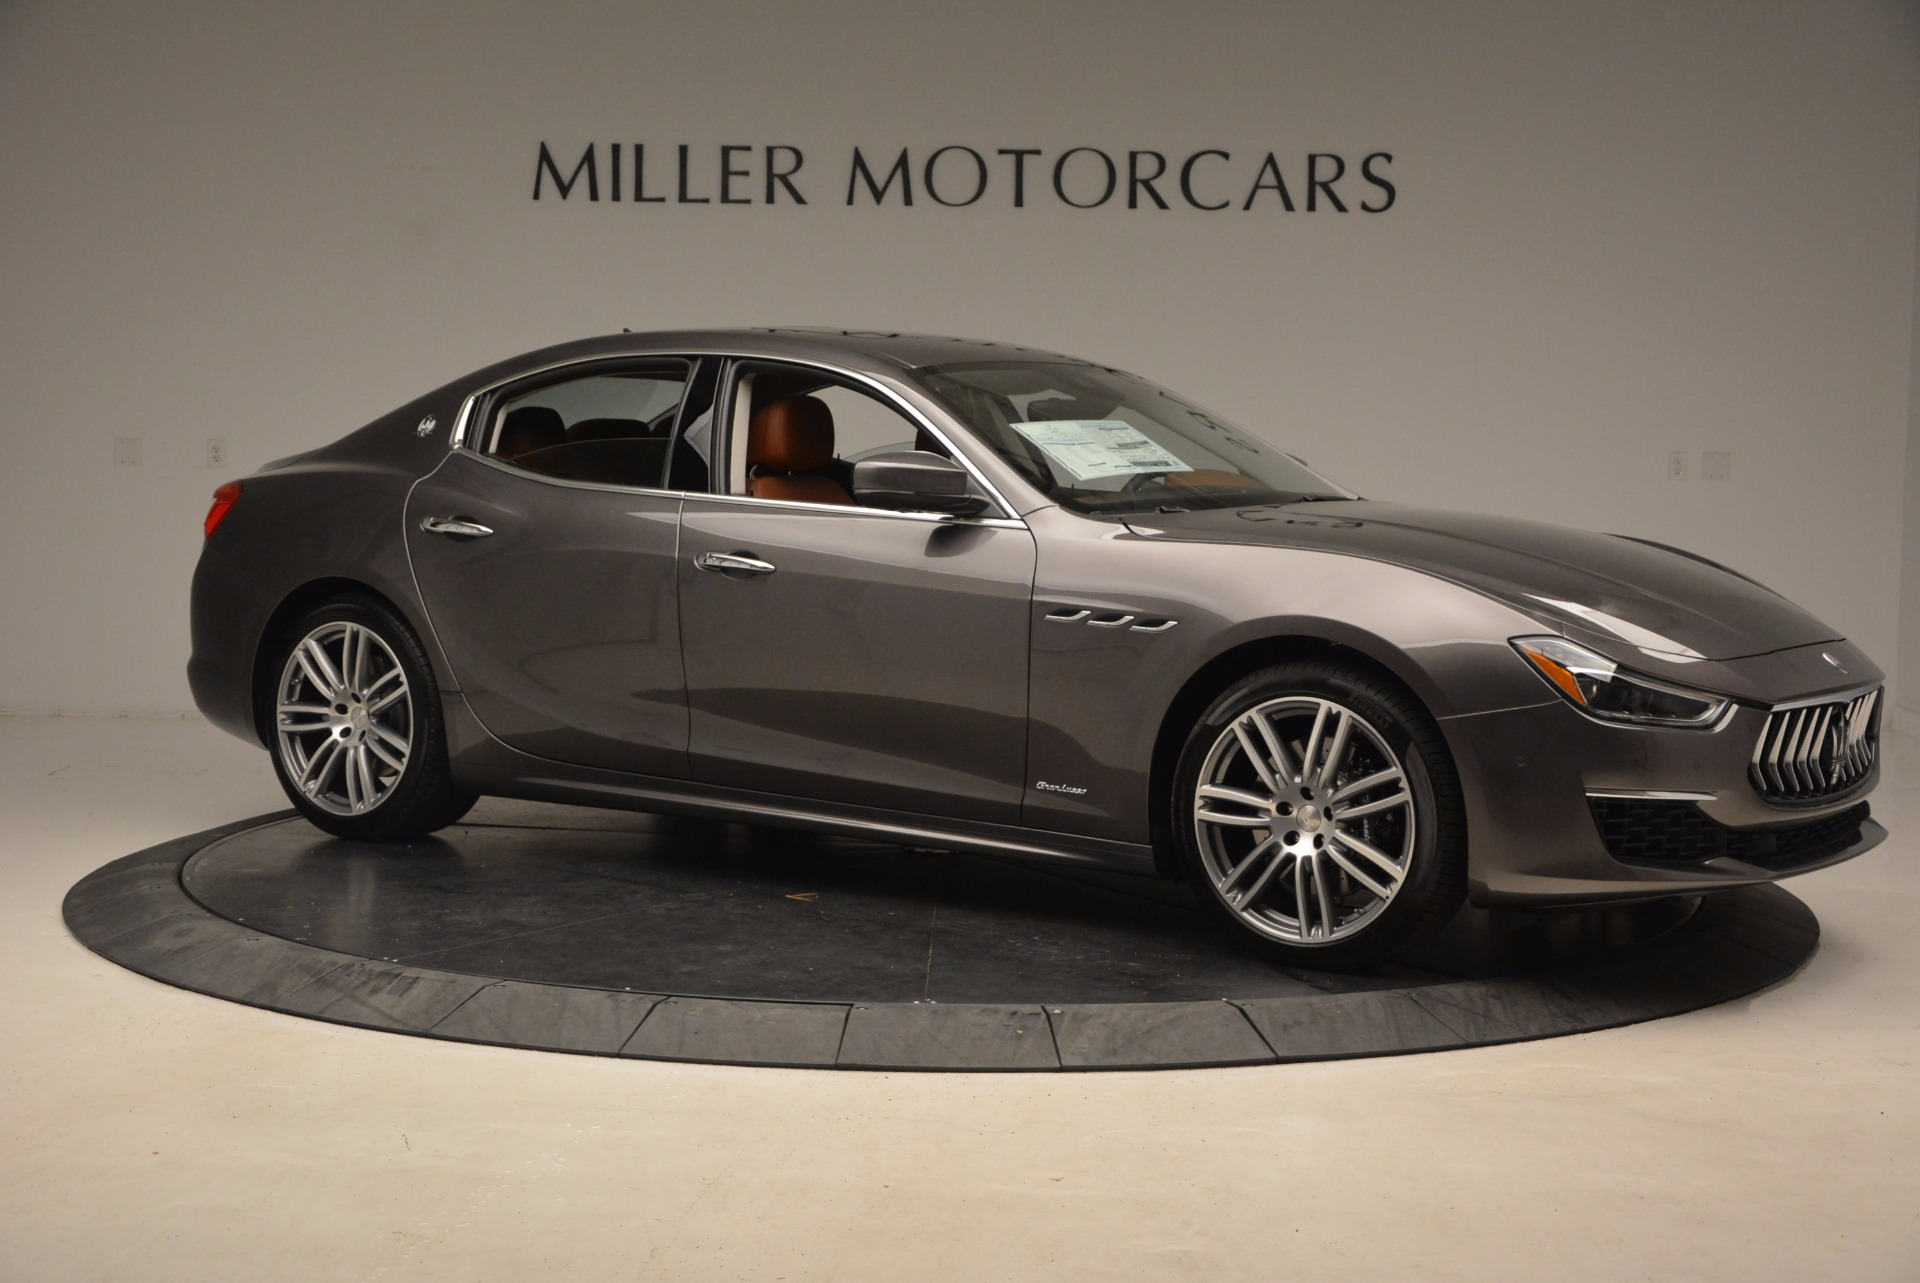 New 2018 Maserati Ghibli S Q4 GranLusso For Sale In Greenwich, CT. Alfa Romeo of Greenwich, M2005 1896_p10